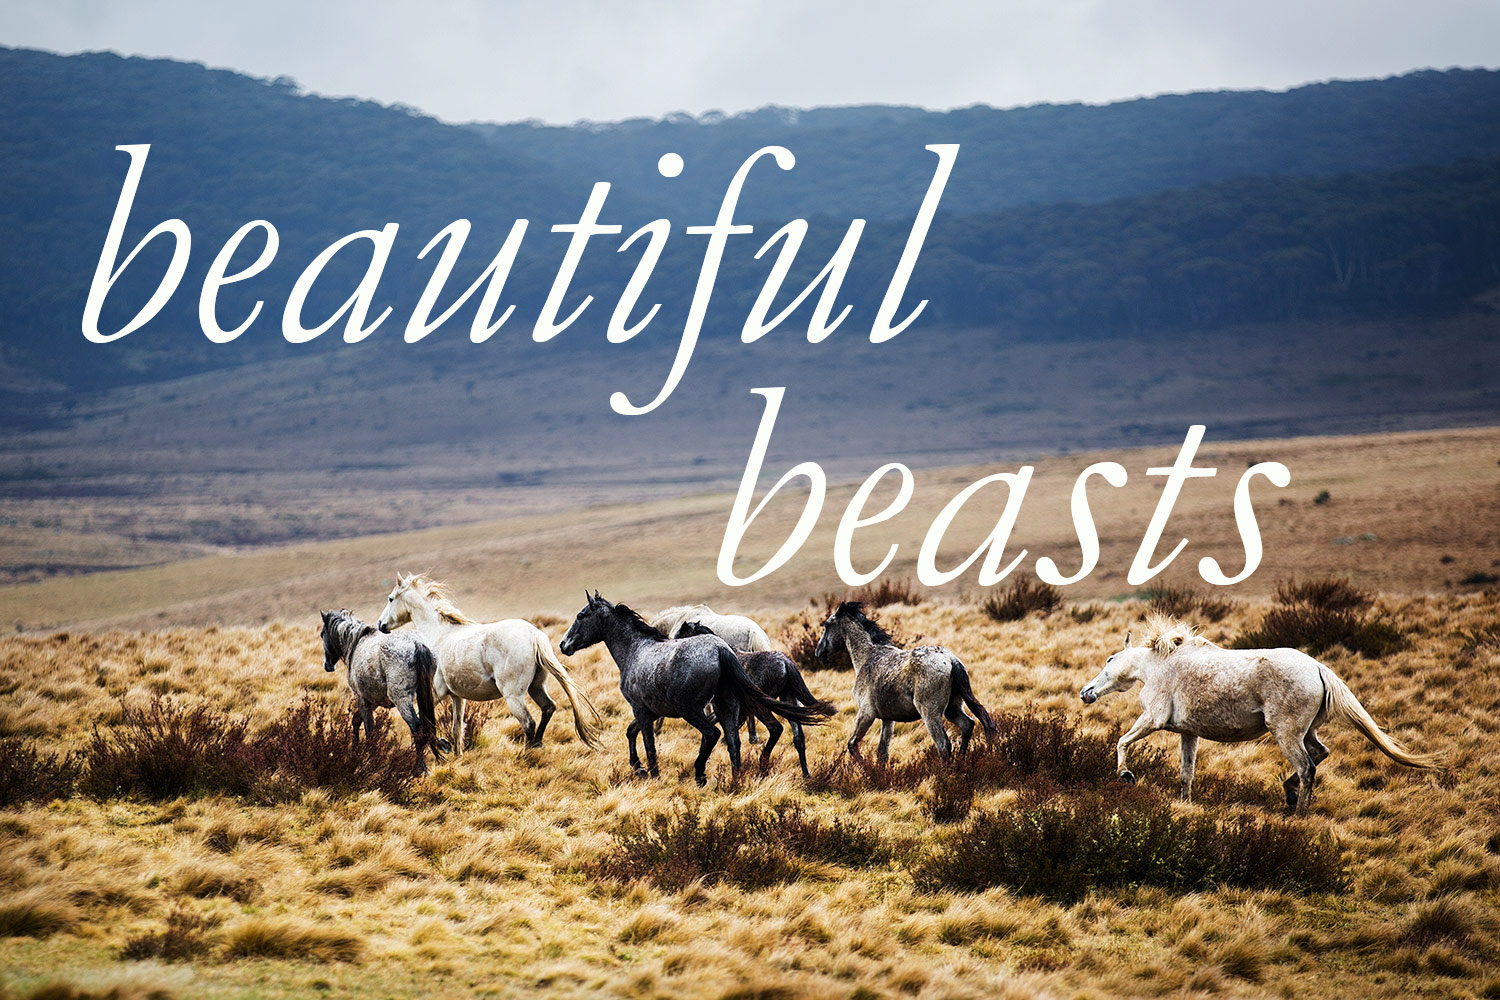 beautiful beasts, a new series of limited edition photographic prints